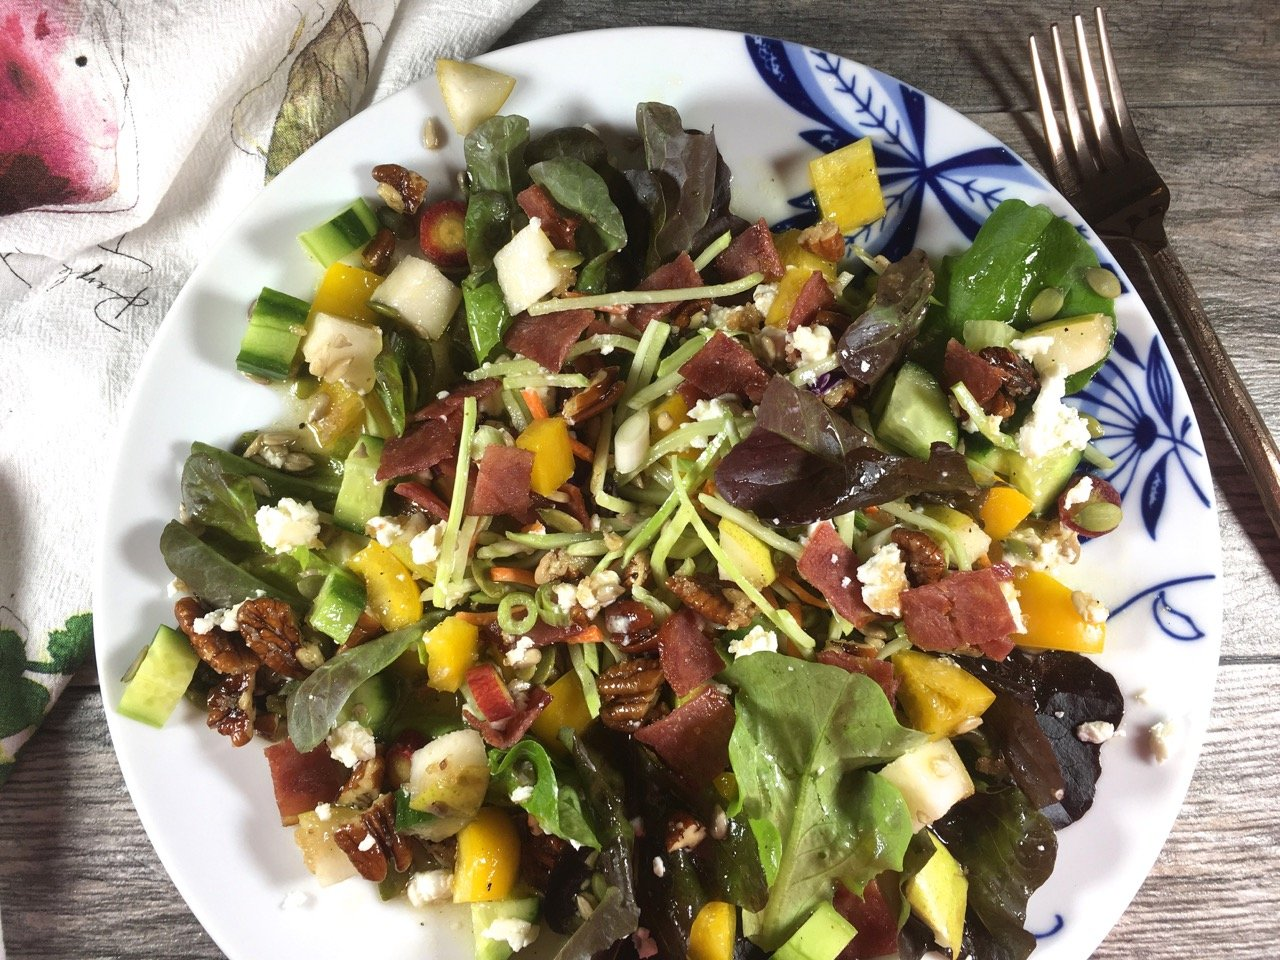 Seasonal salad with pears, goat cheese, pecans and turkey bacon - eating clean in 2019